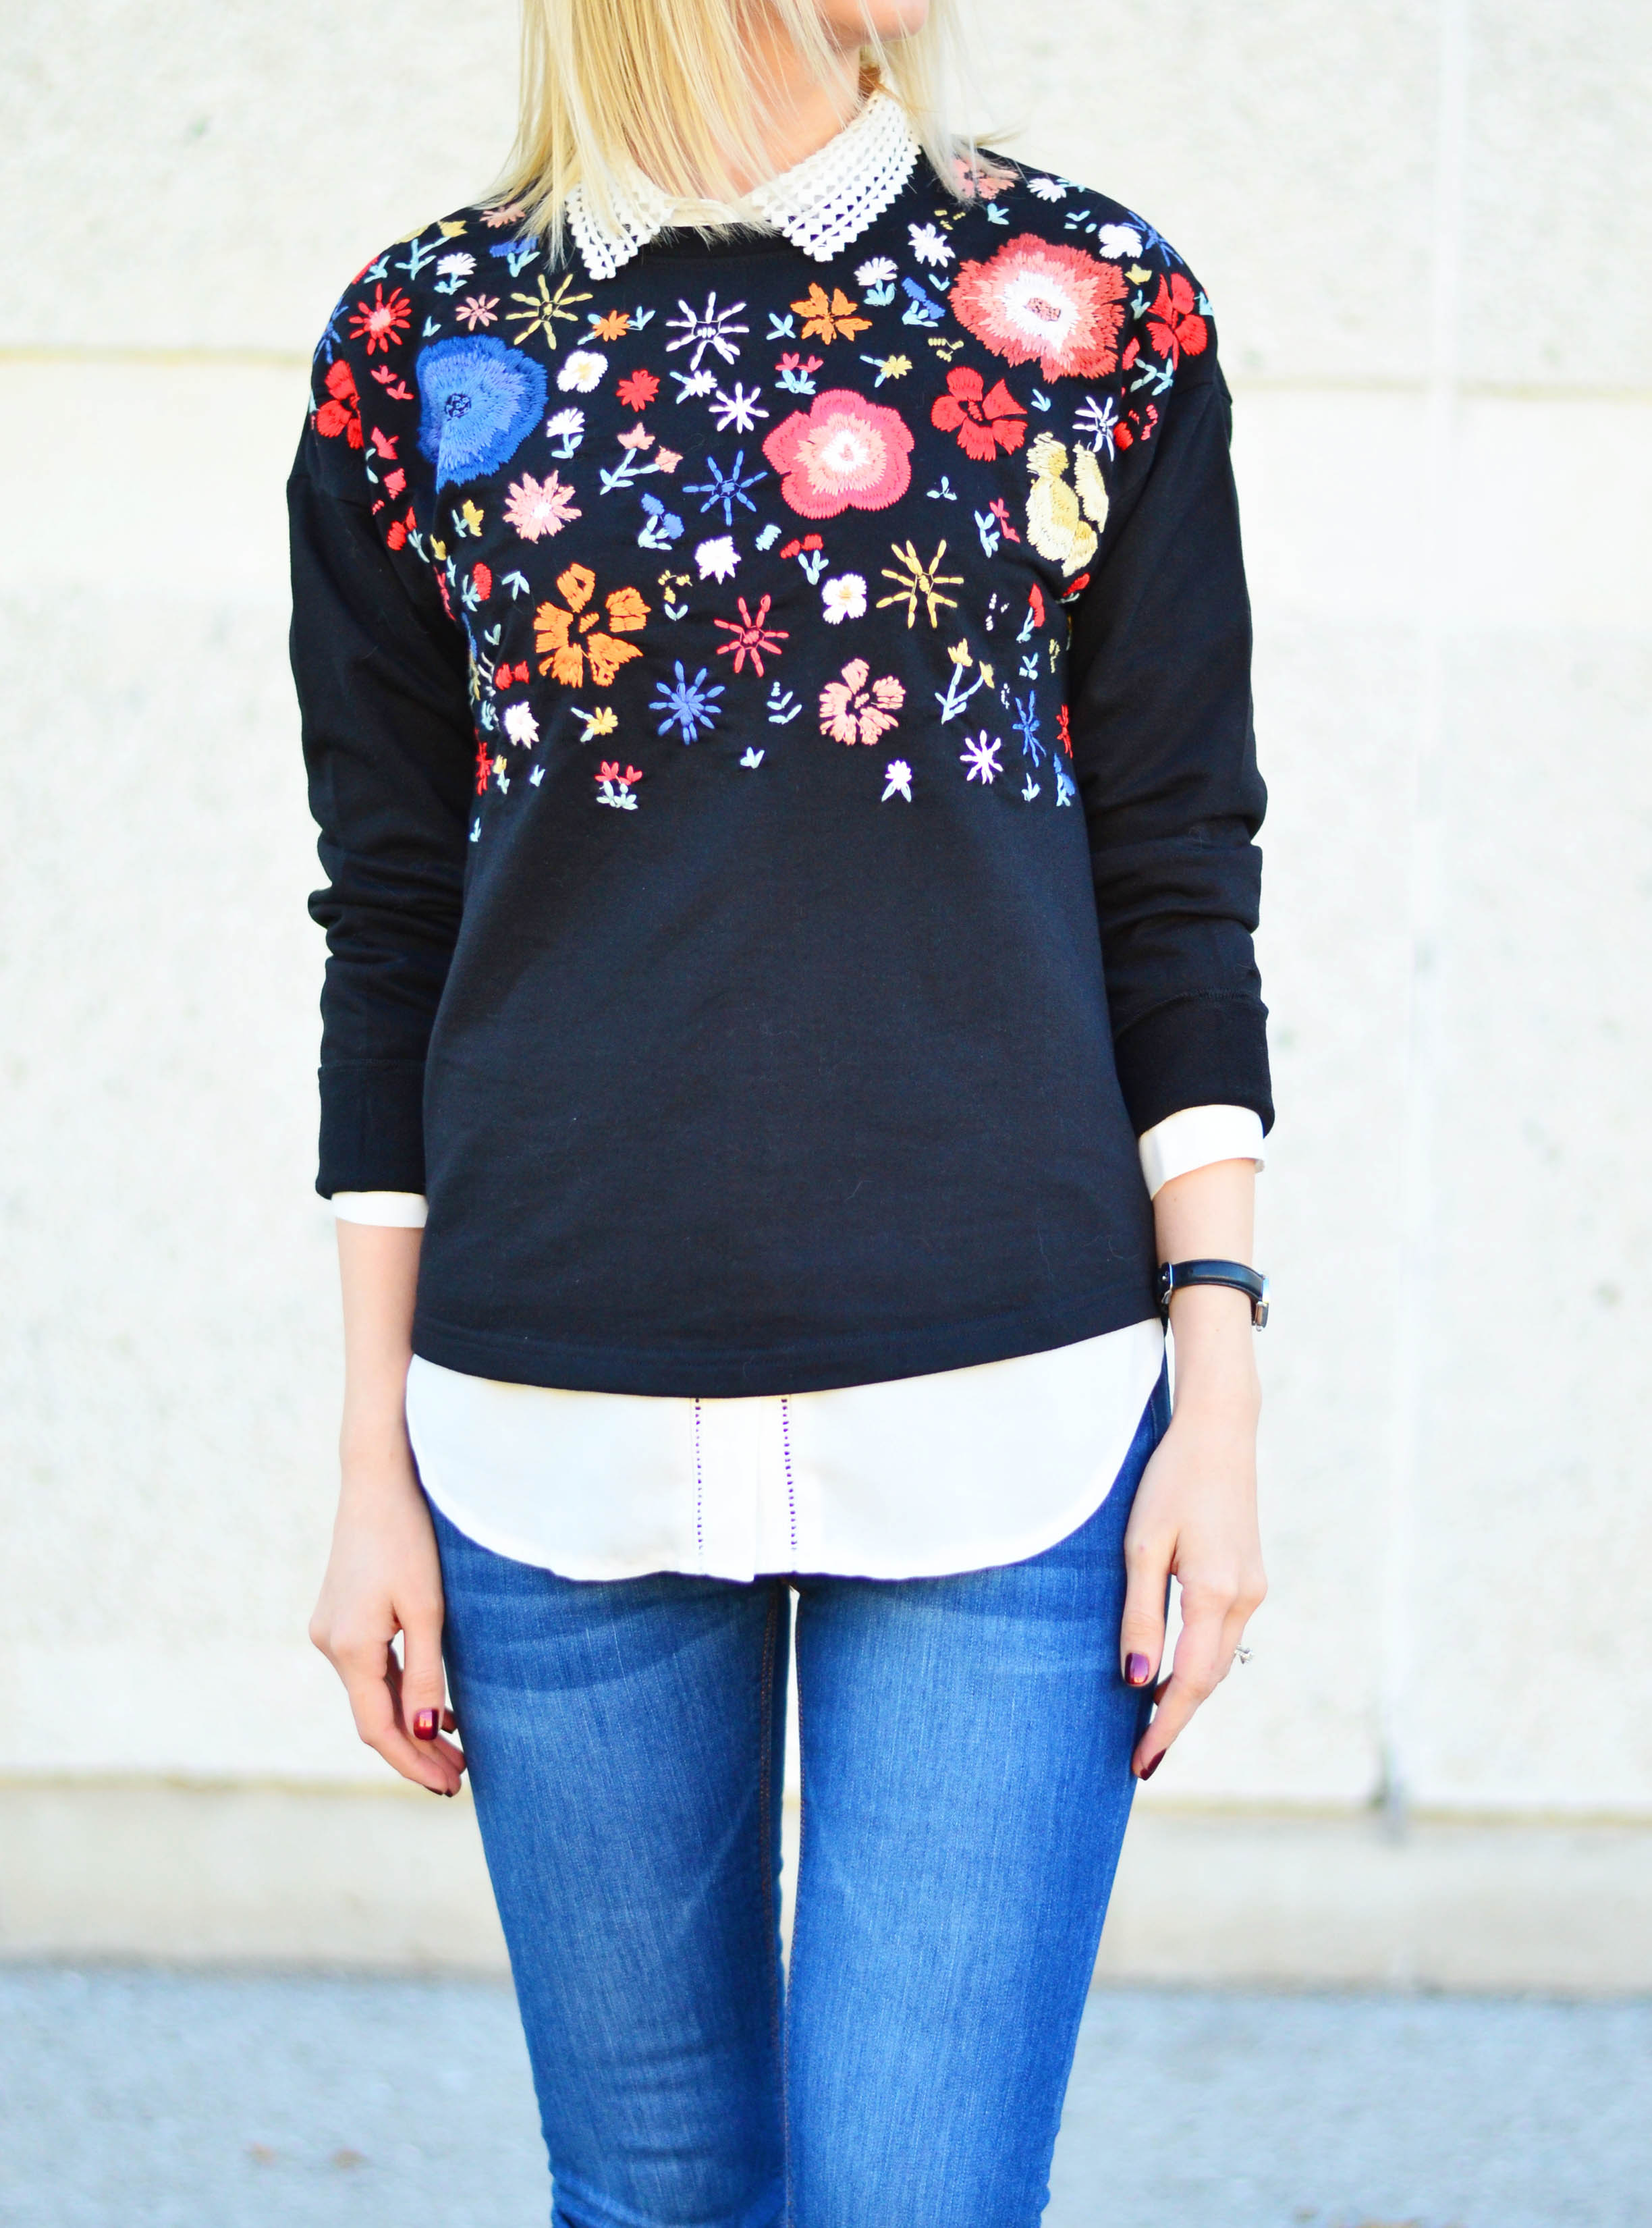 floral embroidery sweatshirt style